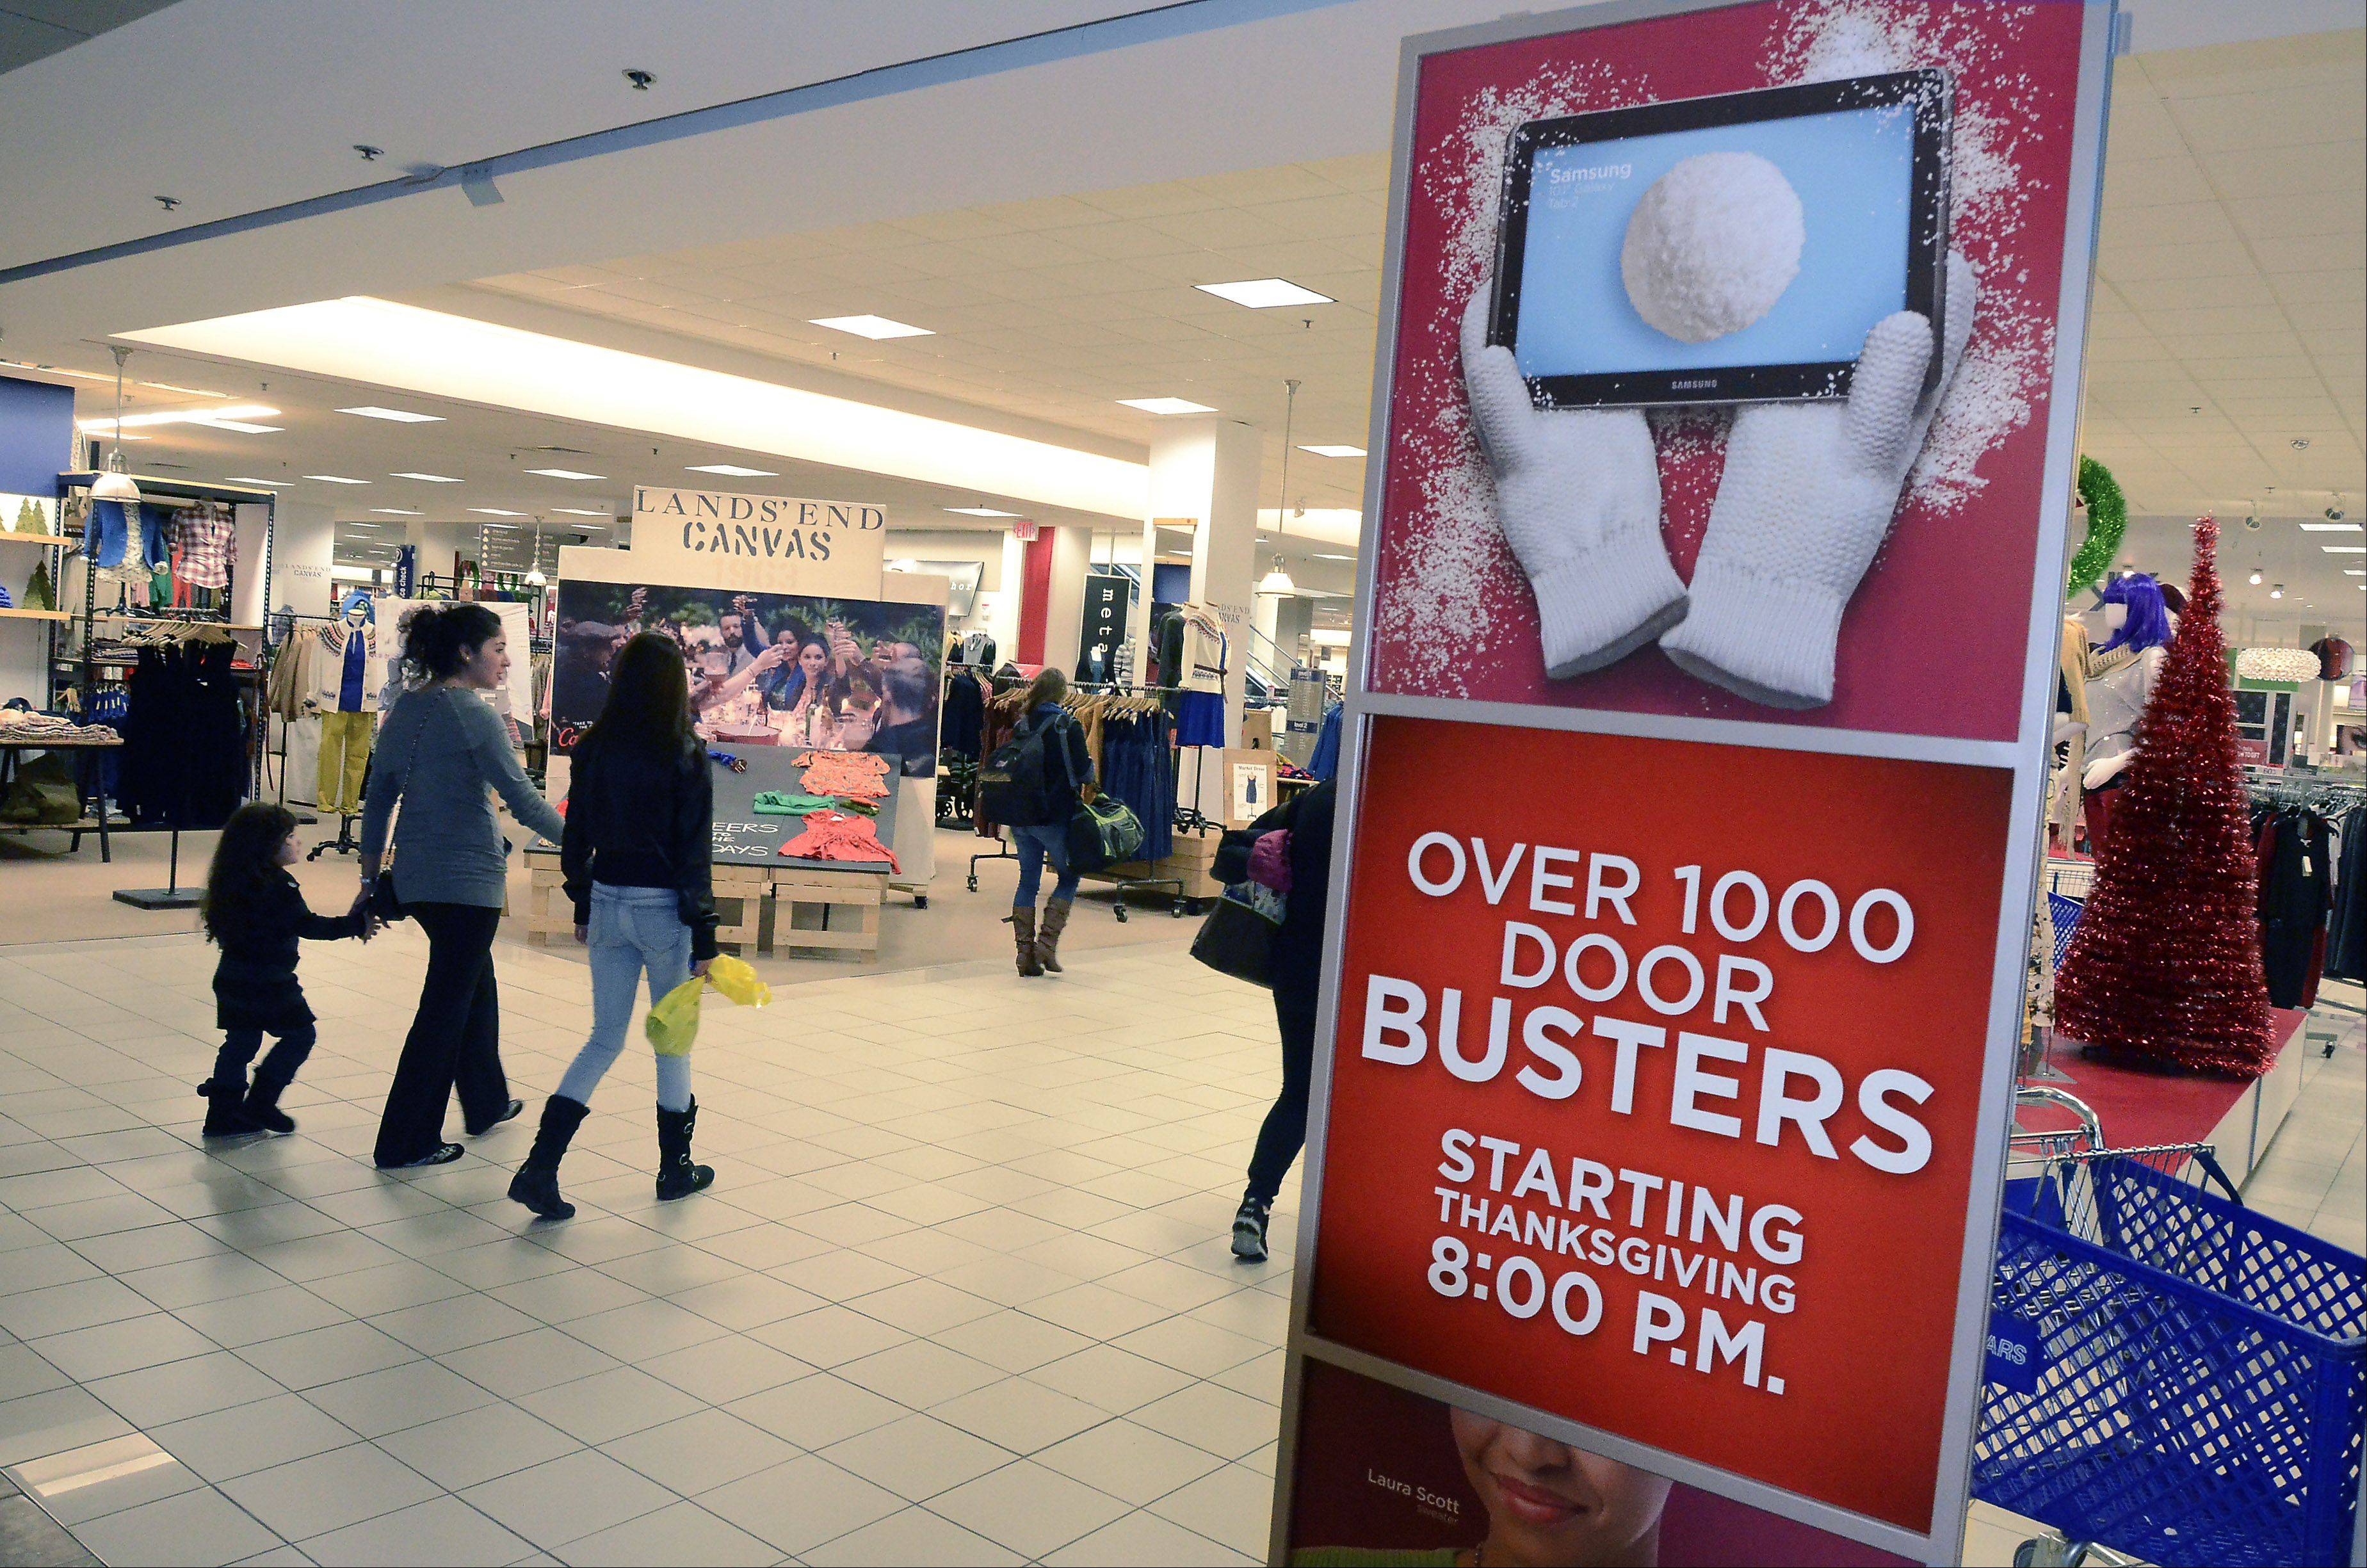 Signs at Sears in Woodfield Mall urge shoppers to start shopping for Black Friday deals before their turkey dinner is digested. Sears is one of several national retailers starting Black Friday sales at 8 p.m. on Thanksgiving this year.